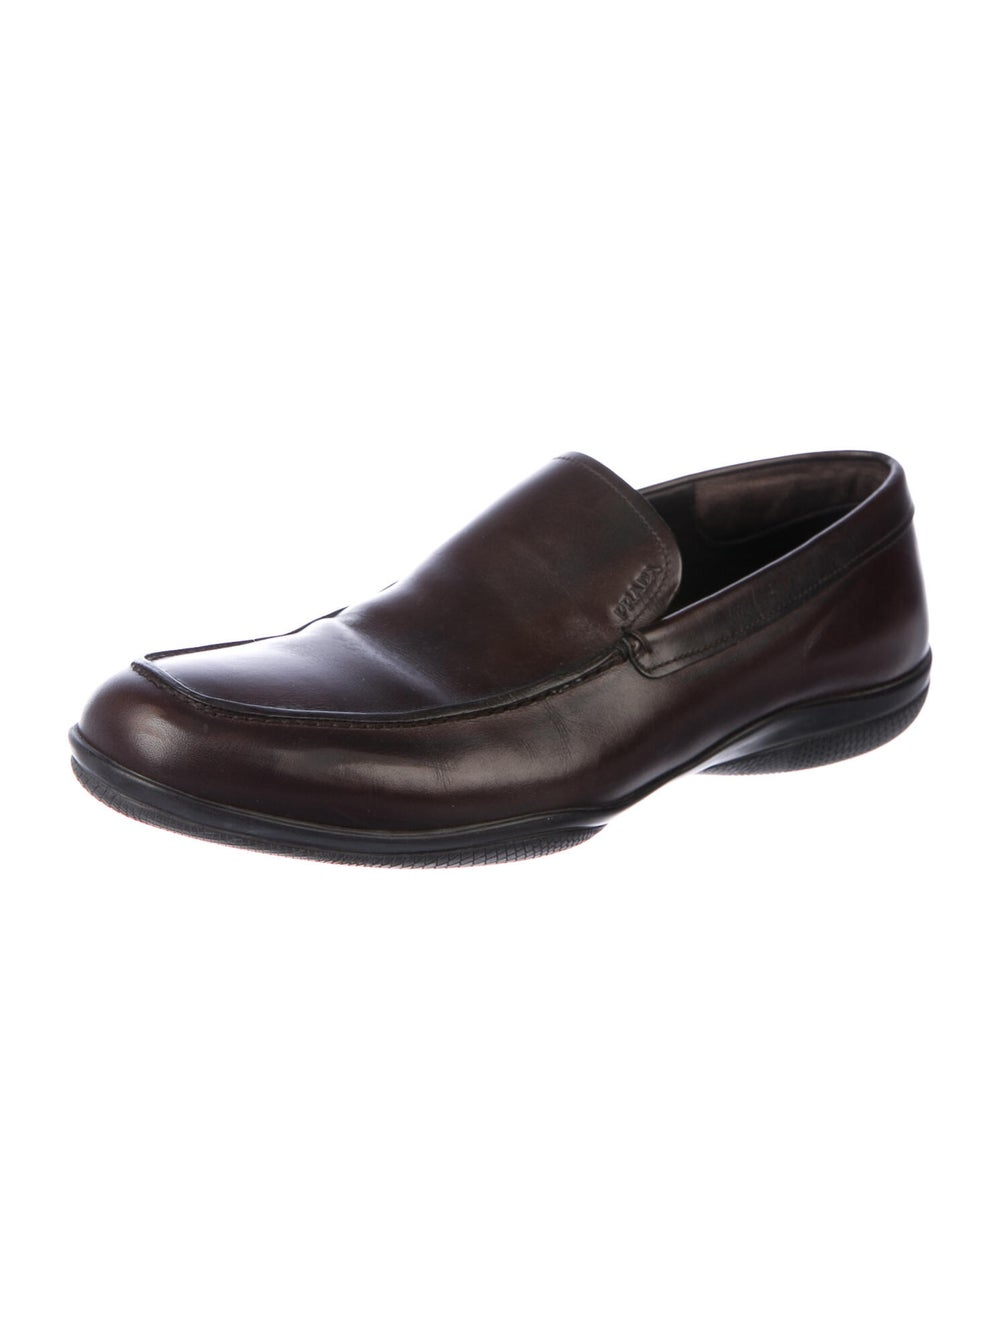 Prada Sport Leather Loafers Brown - image 2